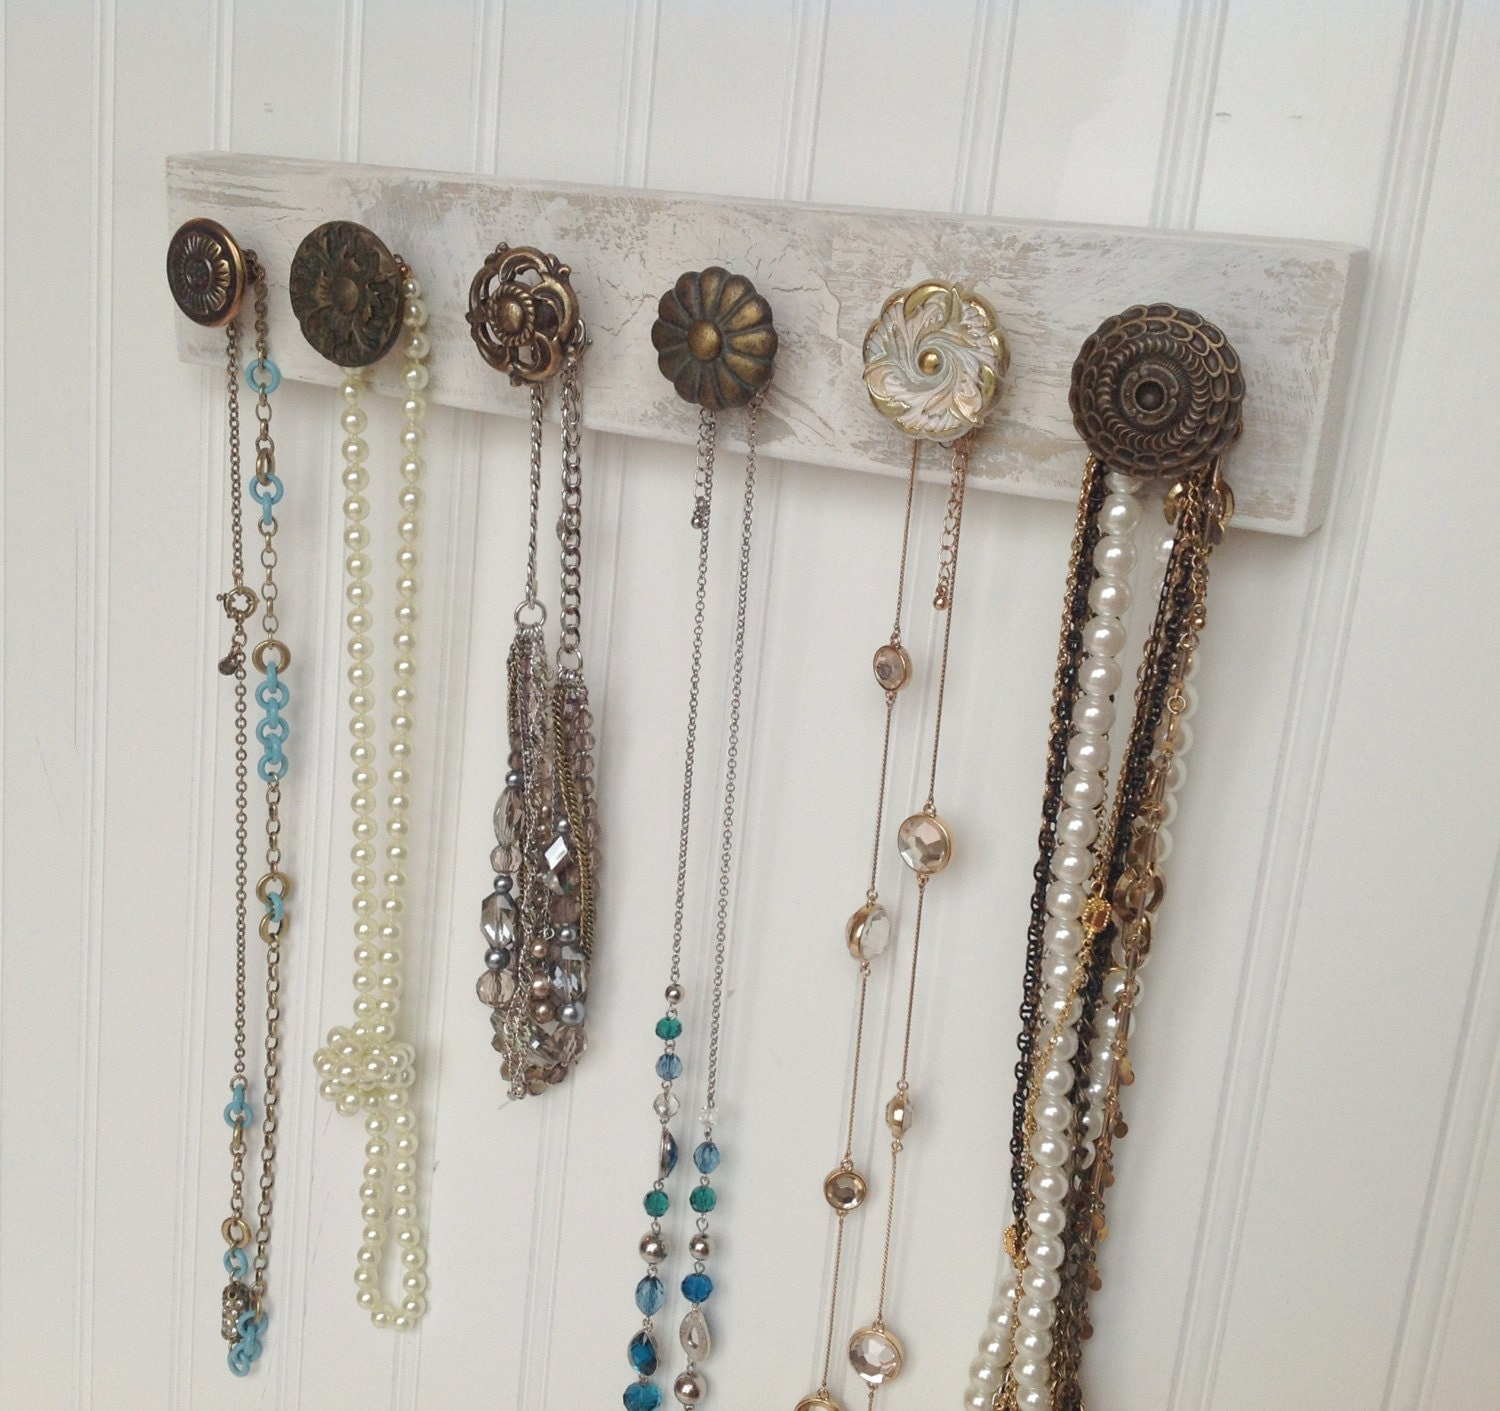 Wall Hanging Necklace Rack Jewelry Organizer Love By